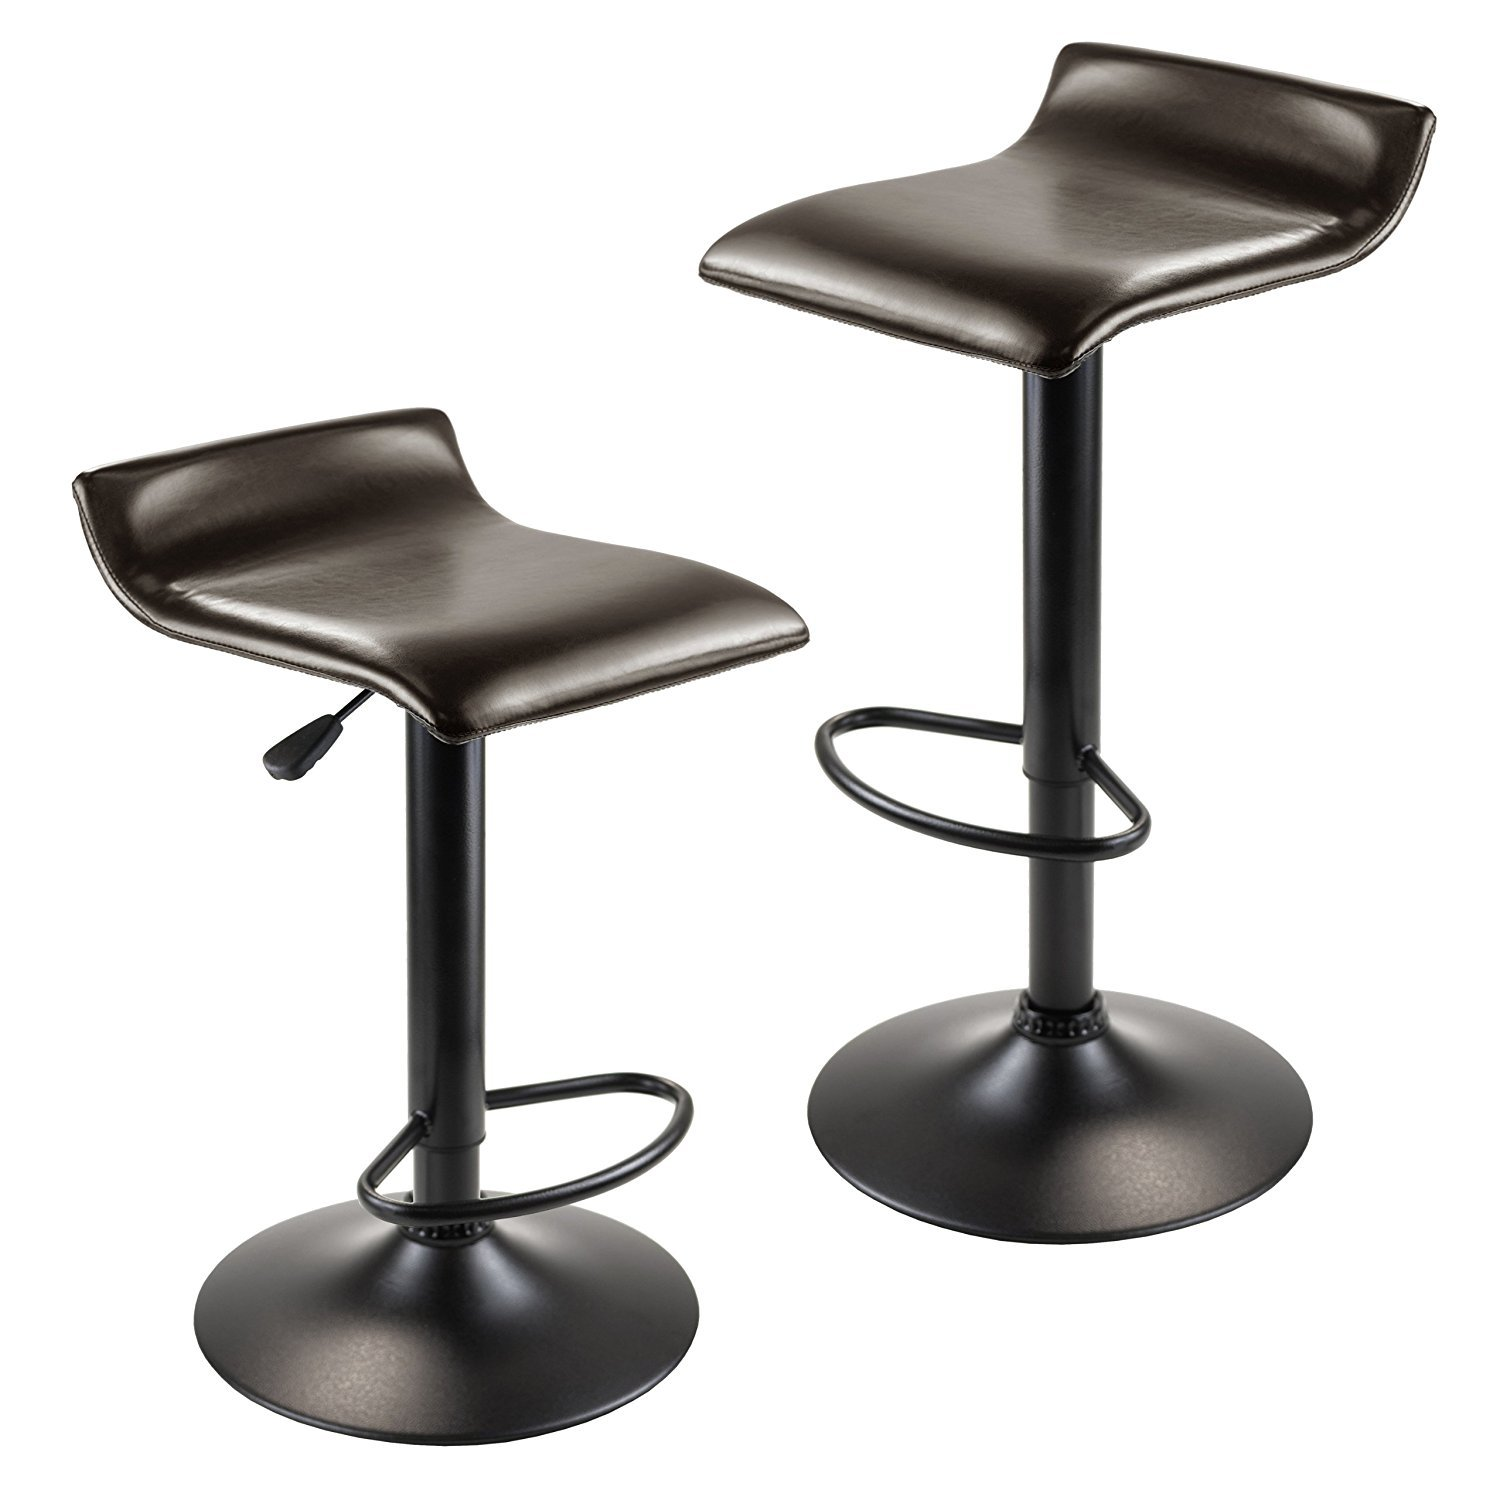 Winsome Wood Paris Adjustable Swivel Airlift Stool with PU Leather Seat, Black Metal Base, Set of 2